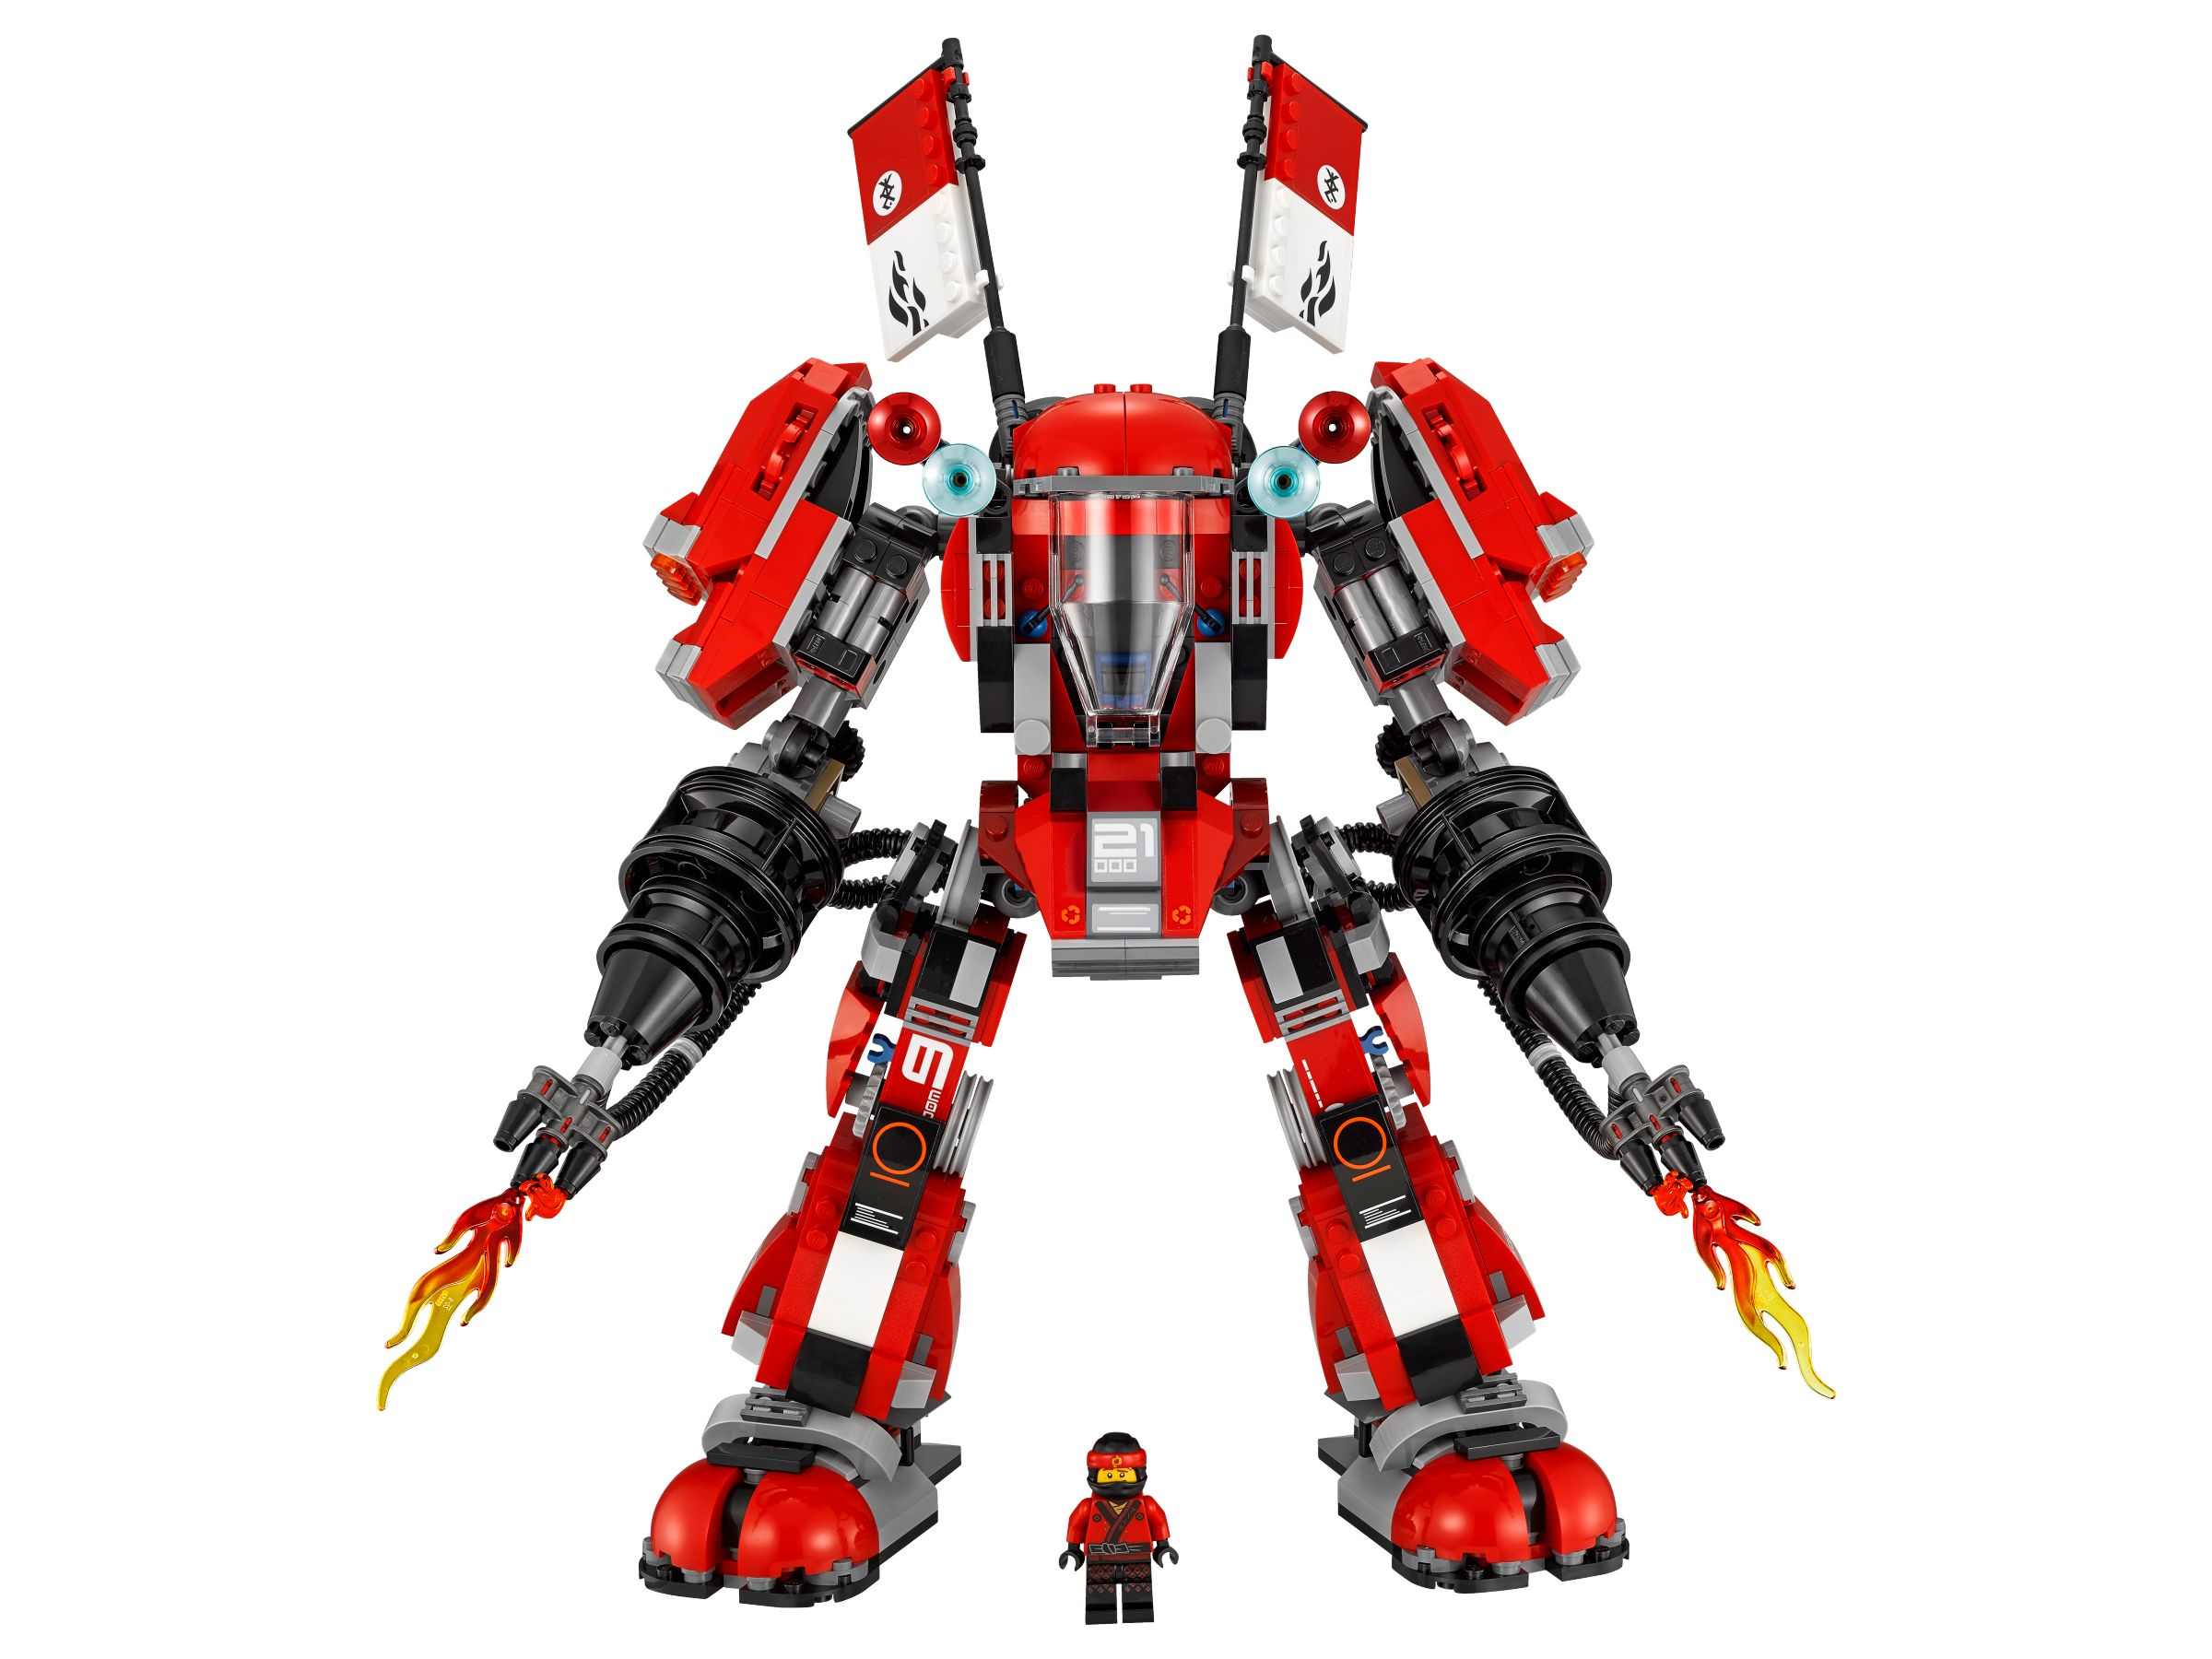 LEGO The LEGO Ninjago Movie 70615 Kai's Feuer-Mech LEGO_70615_alt6.jpg